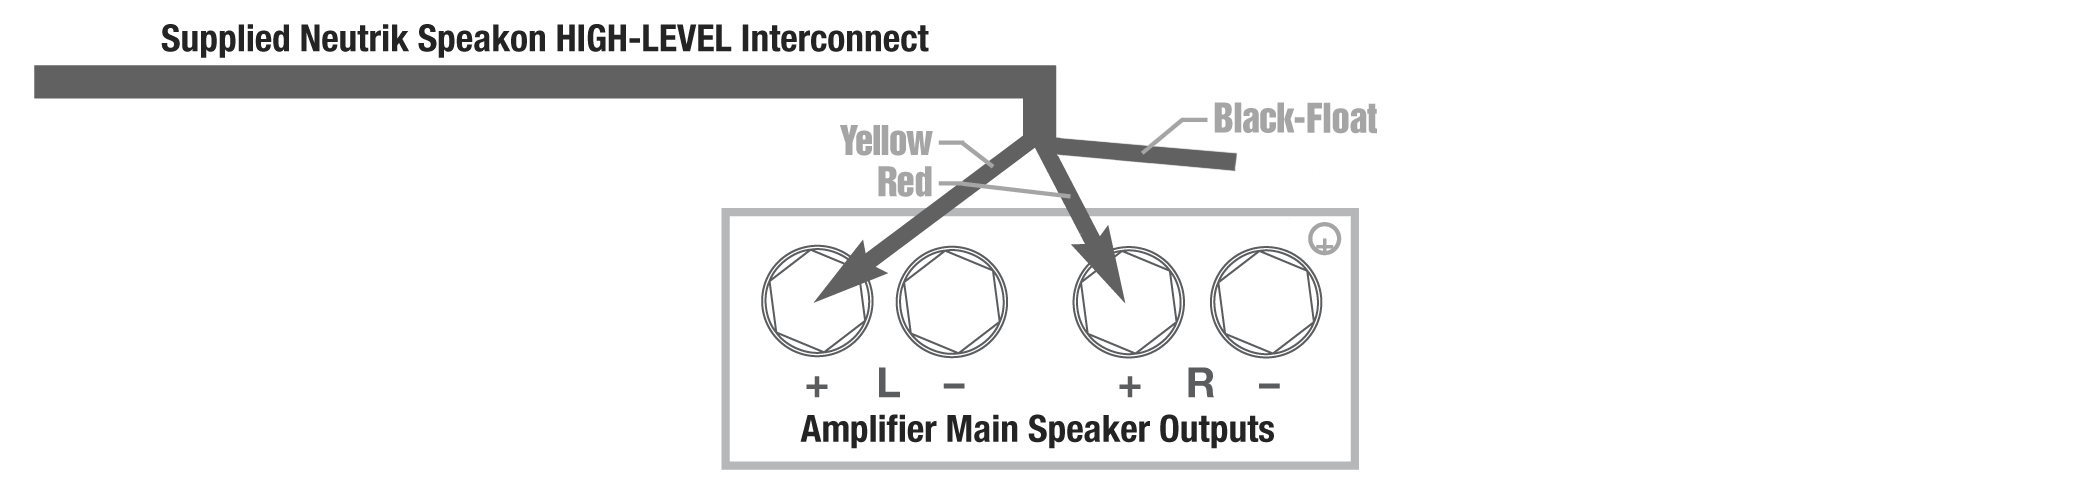 Class_D_connection_image1 class d amp connection methods rel acoustics rel speakon wiring diagram at webbmarketing.co